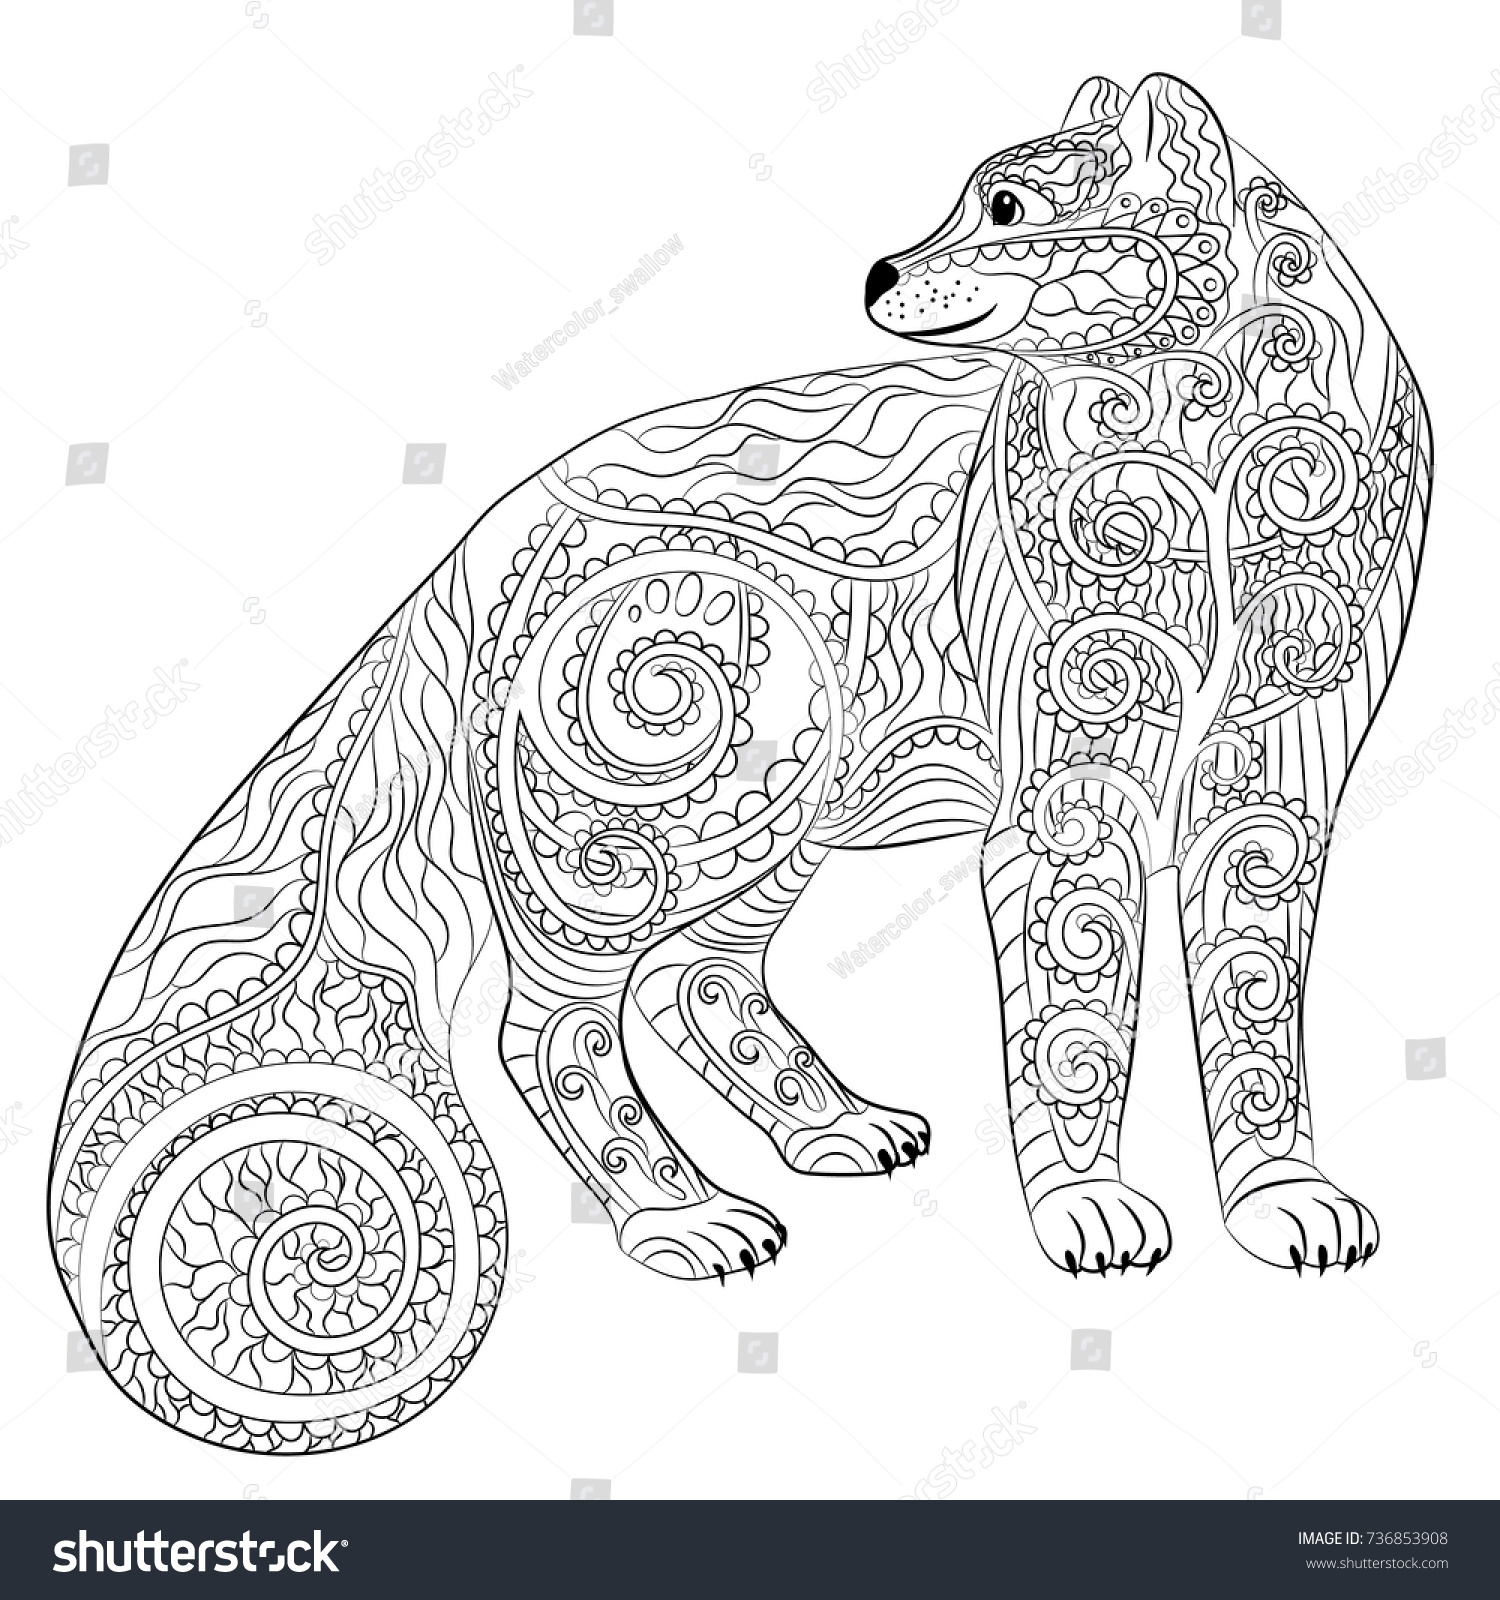 arctic fox coloring pages Hand Drawn Illustration Arctic Fox Zentangle Stock Vector (Royalty  arctic fox coloring pages